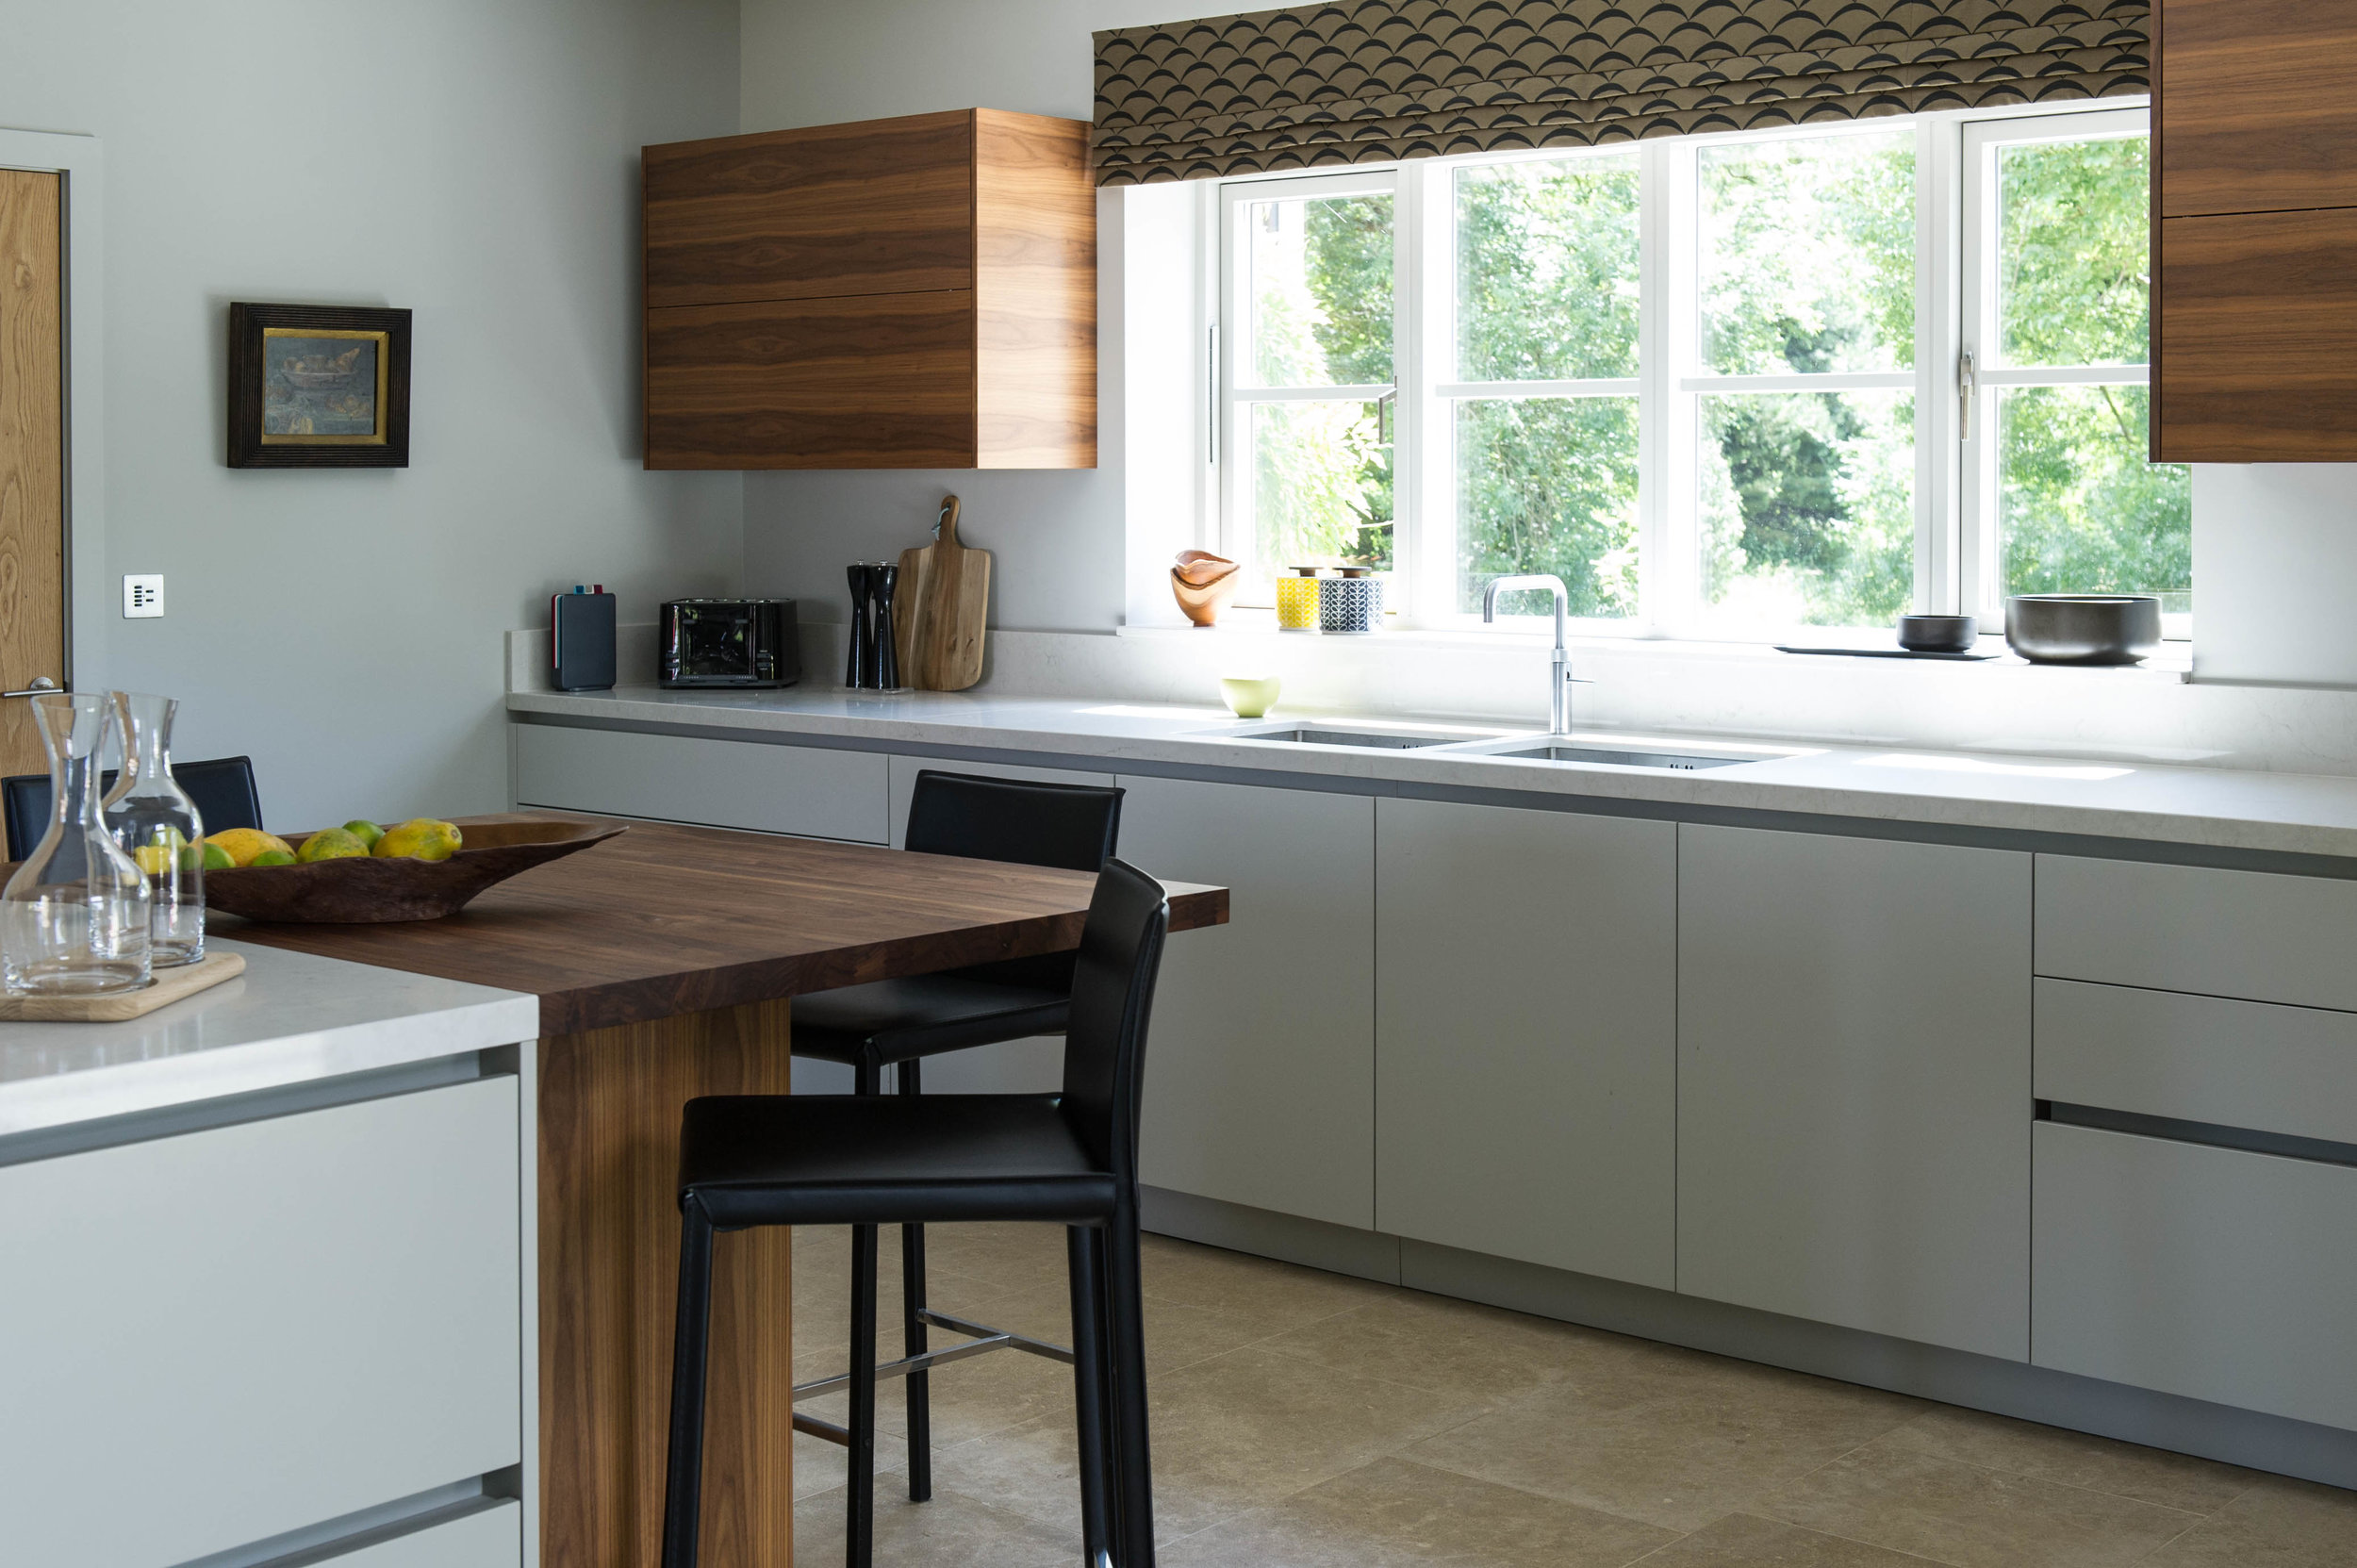 Kitchen design with painted base units, walnut wall units and island unit with bar stools.